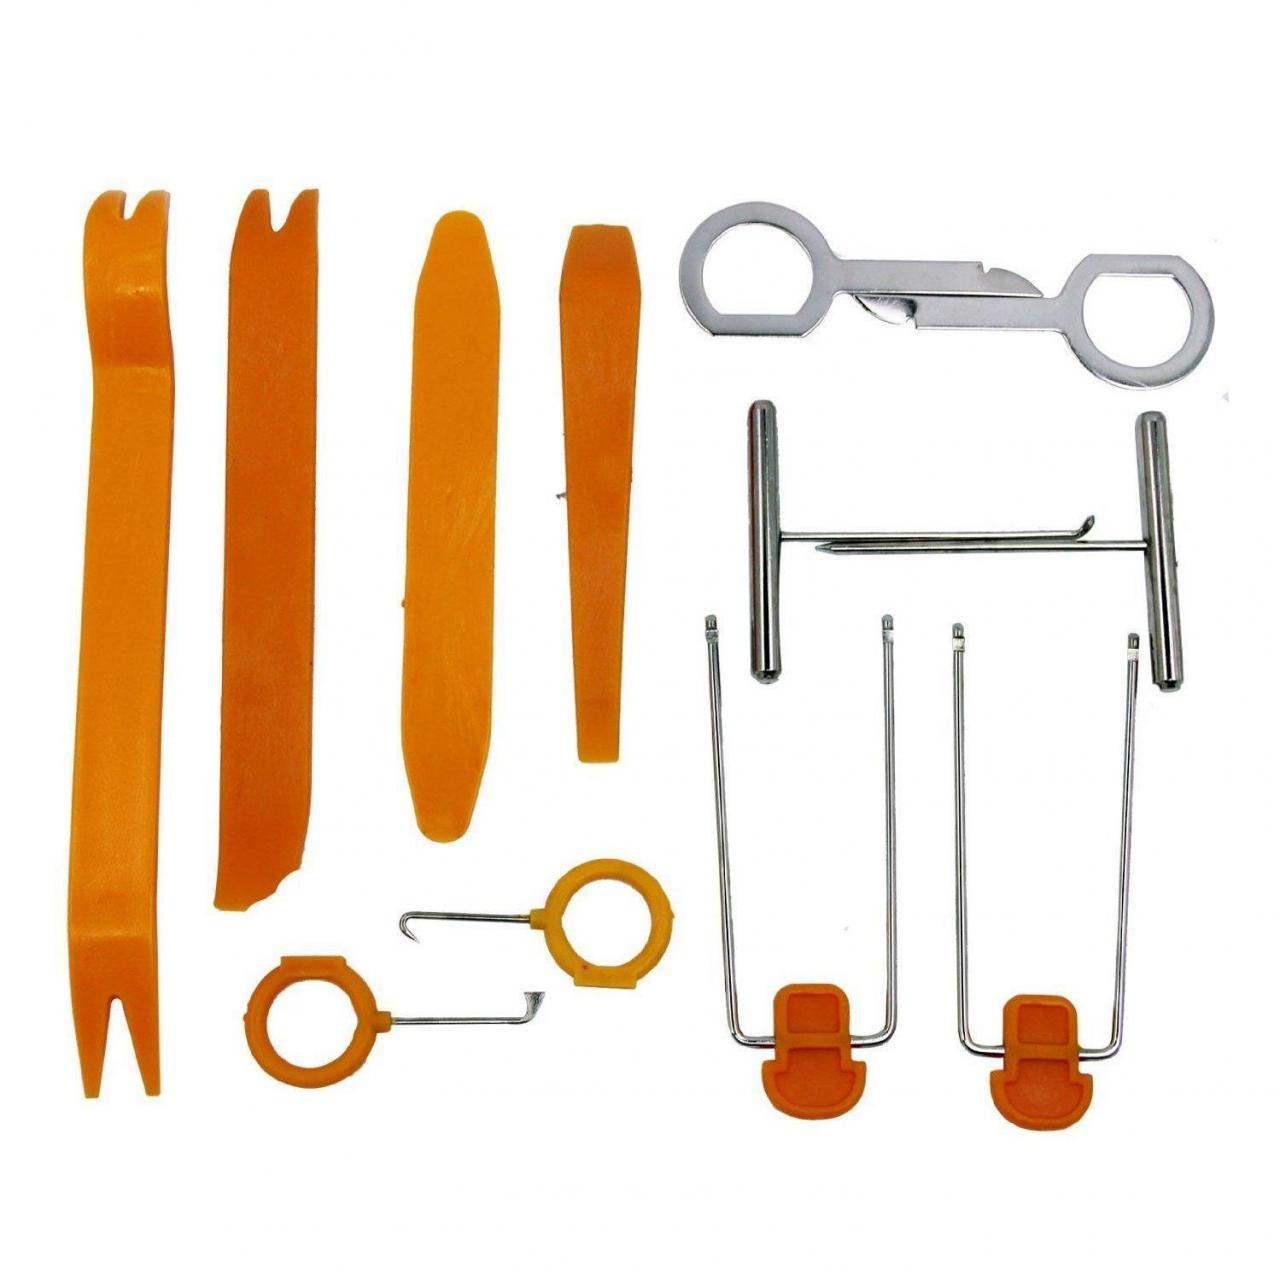 Car tools and equipment